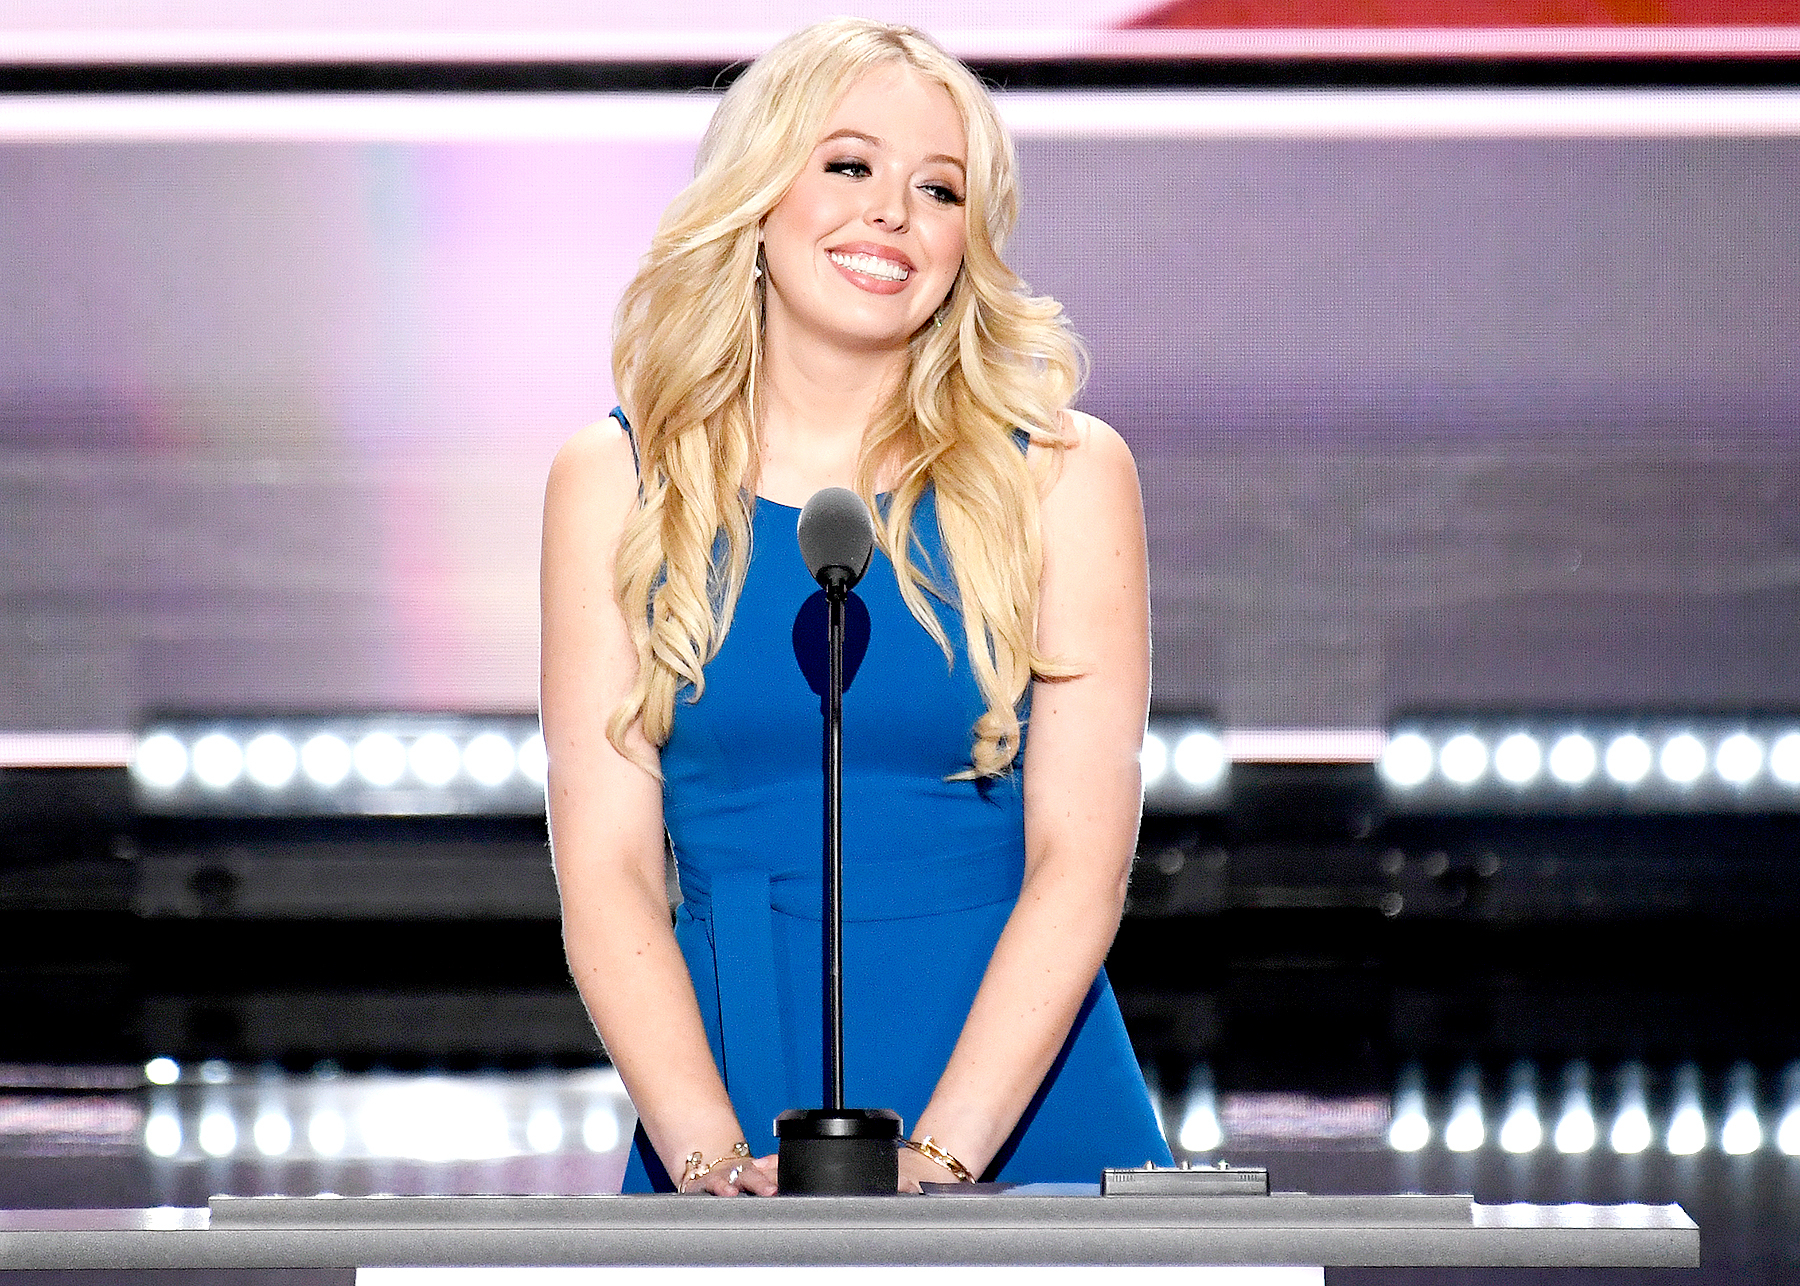 Tiffany Trump, daughter of Donald Trump, speaks at the 2016 Republican National Convention in Cleveland, Ohio on Monday, July 19, 2016.